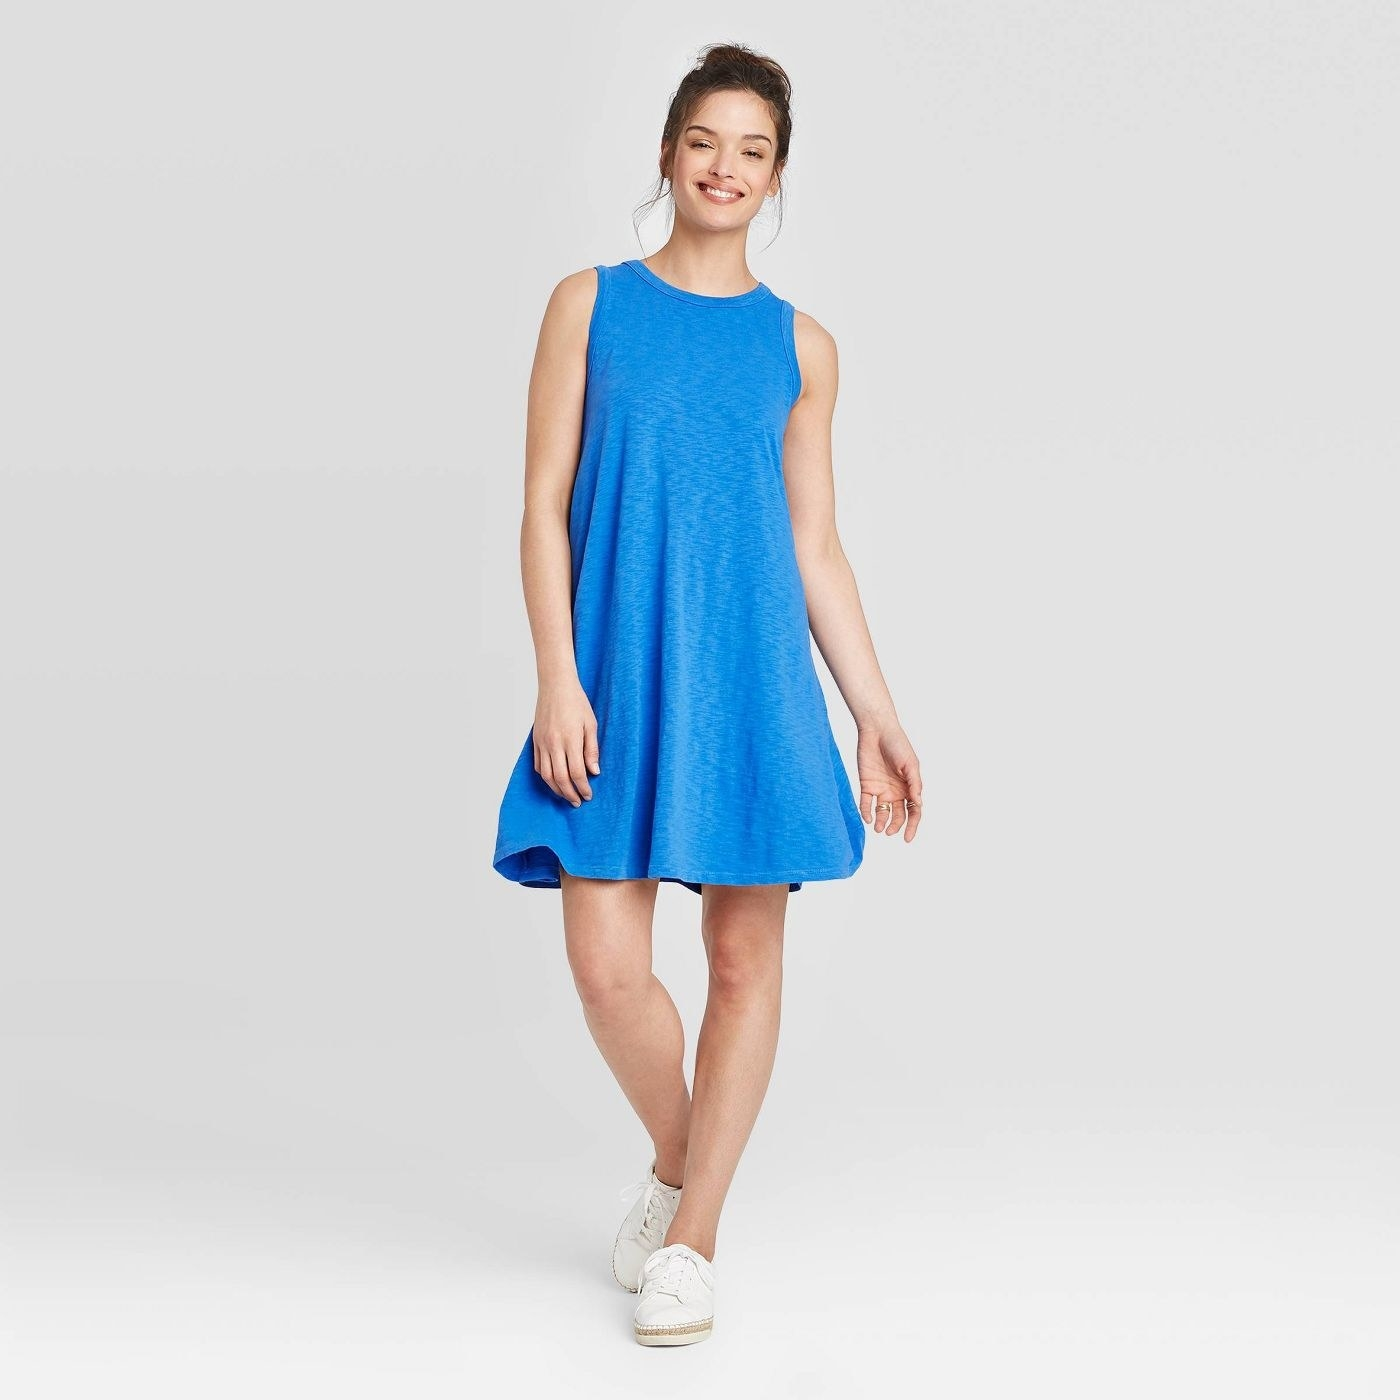 A blue dress with a hem just above the knee